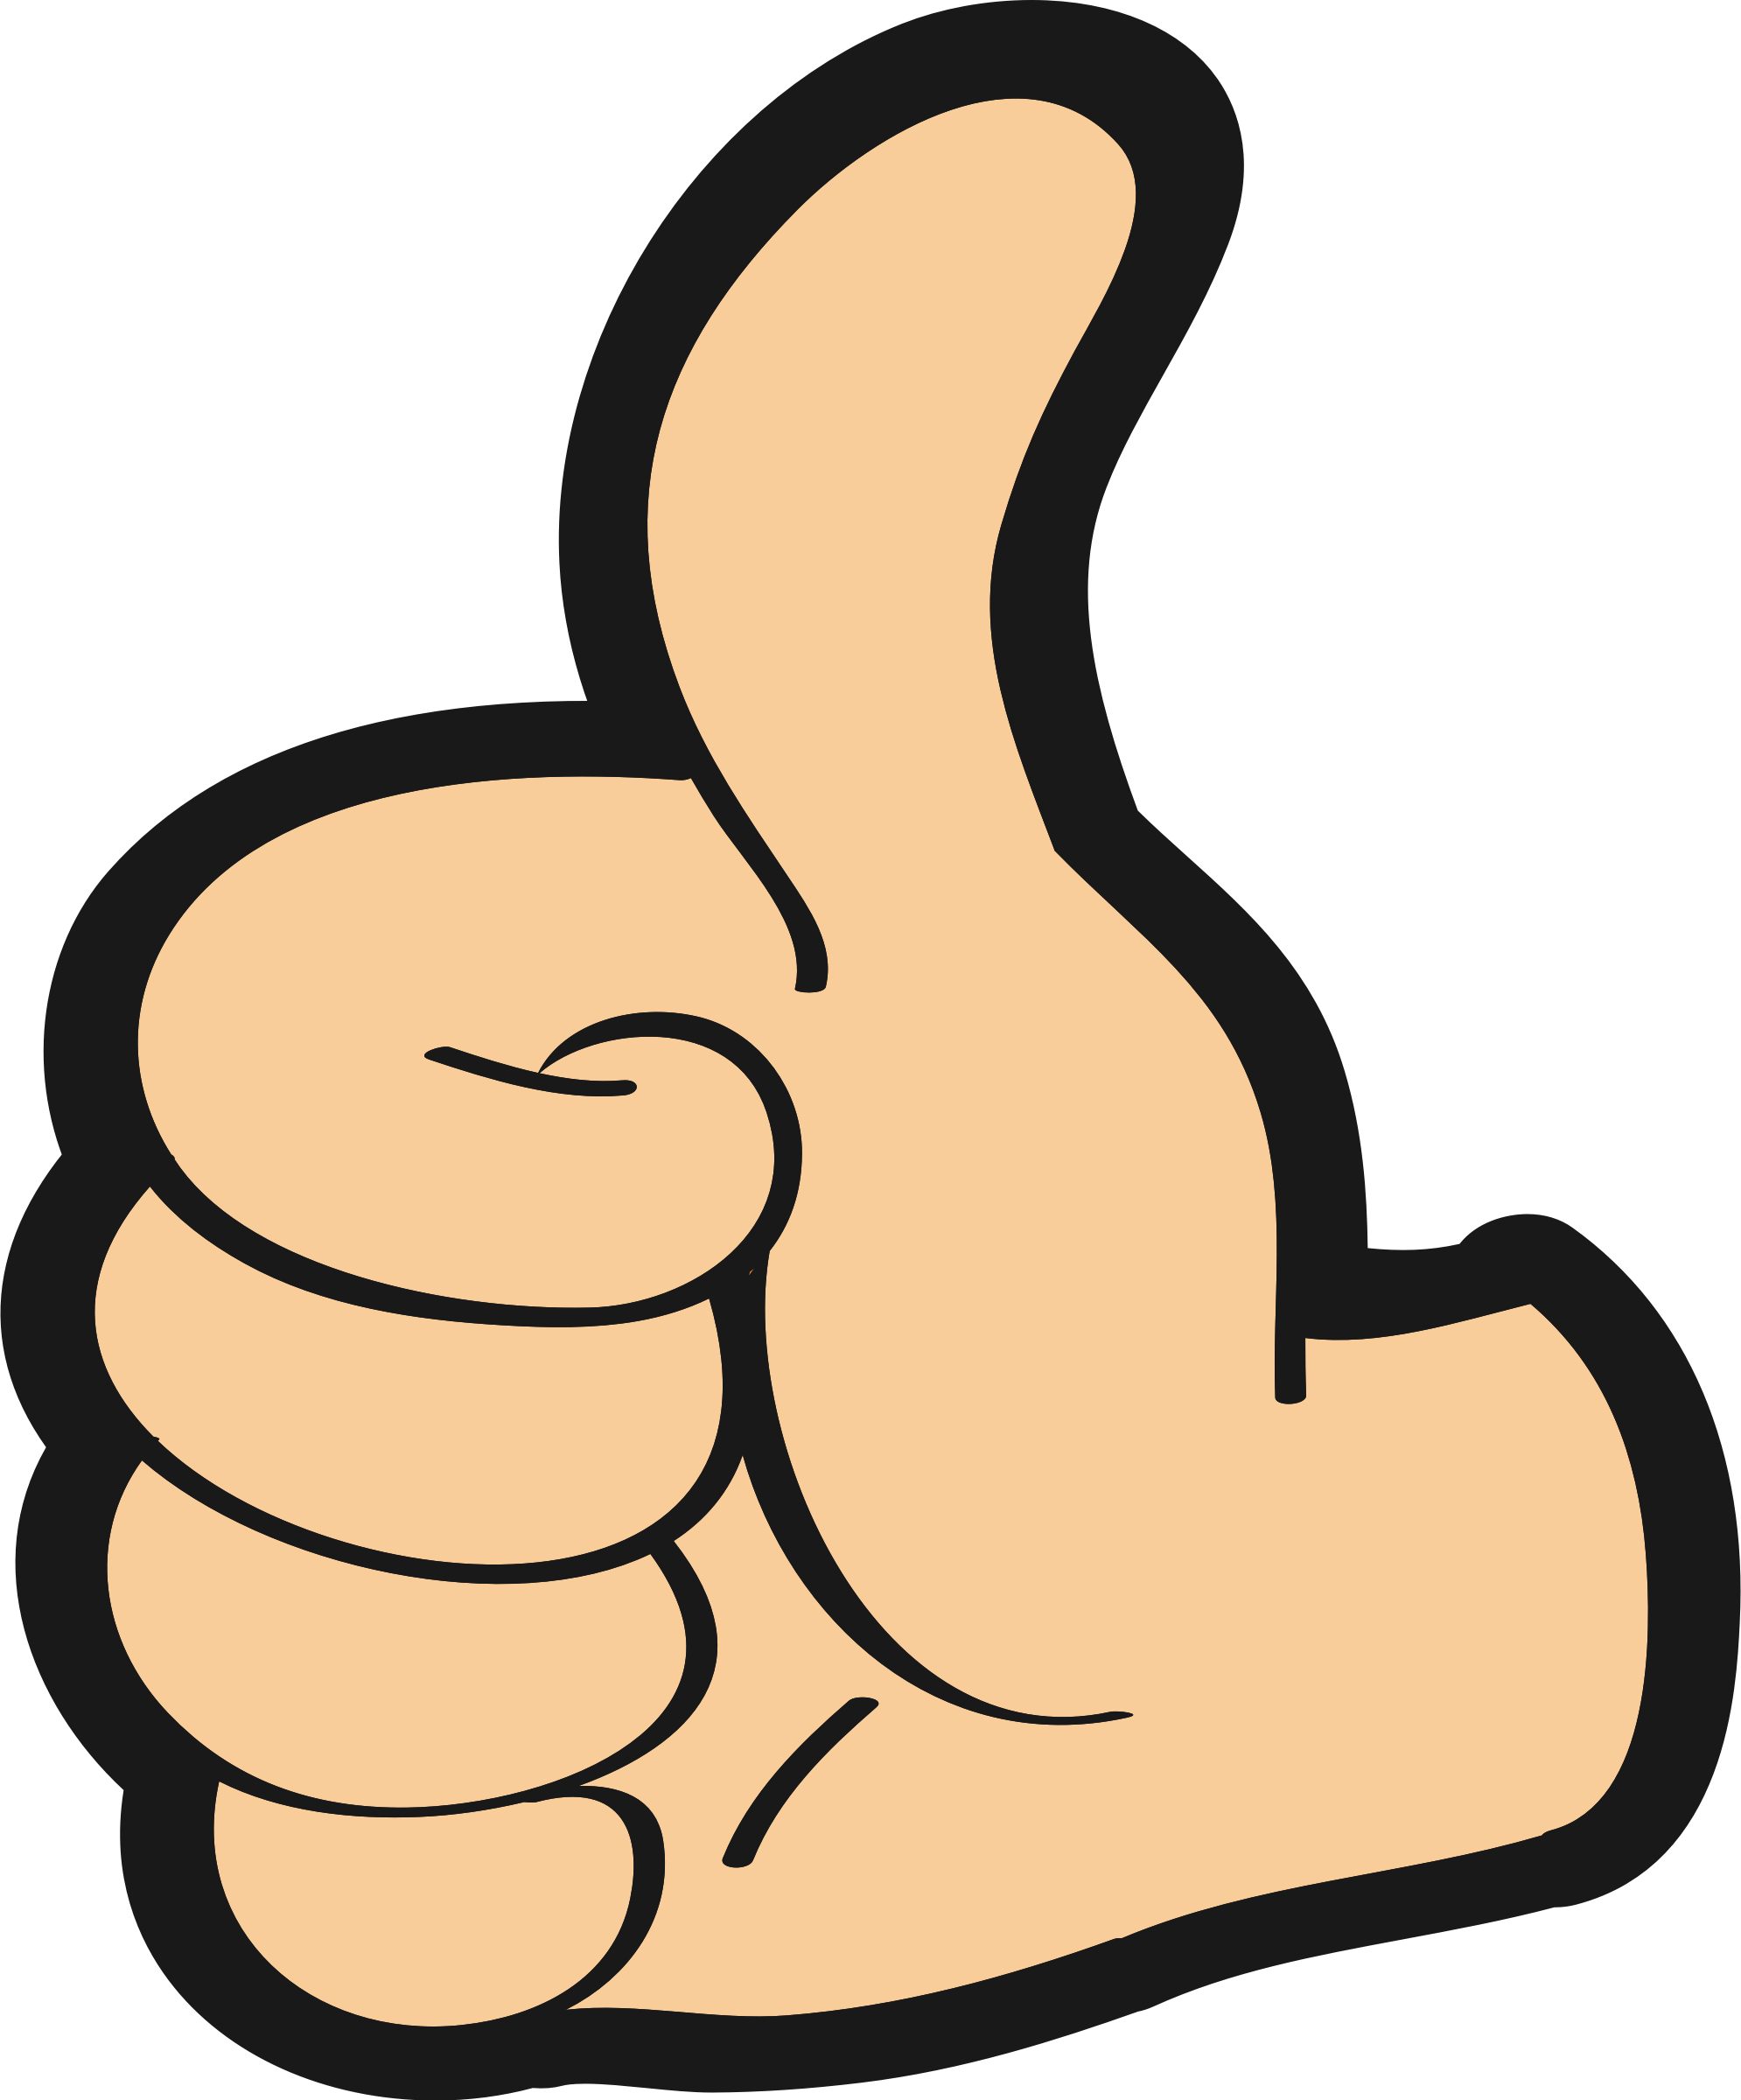 Thumbs up clipart transparent background clipart transparent download HD Thumbs Up Clipart Transparent Transparent Background ... clipart transparent download